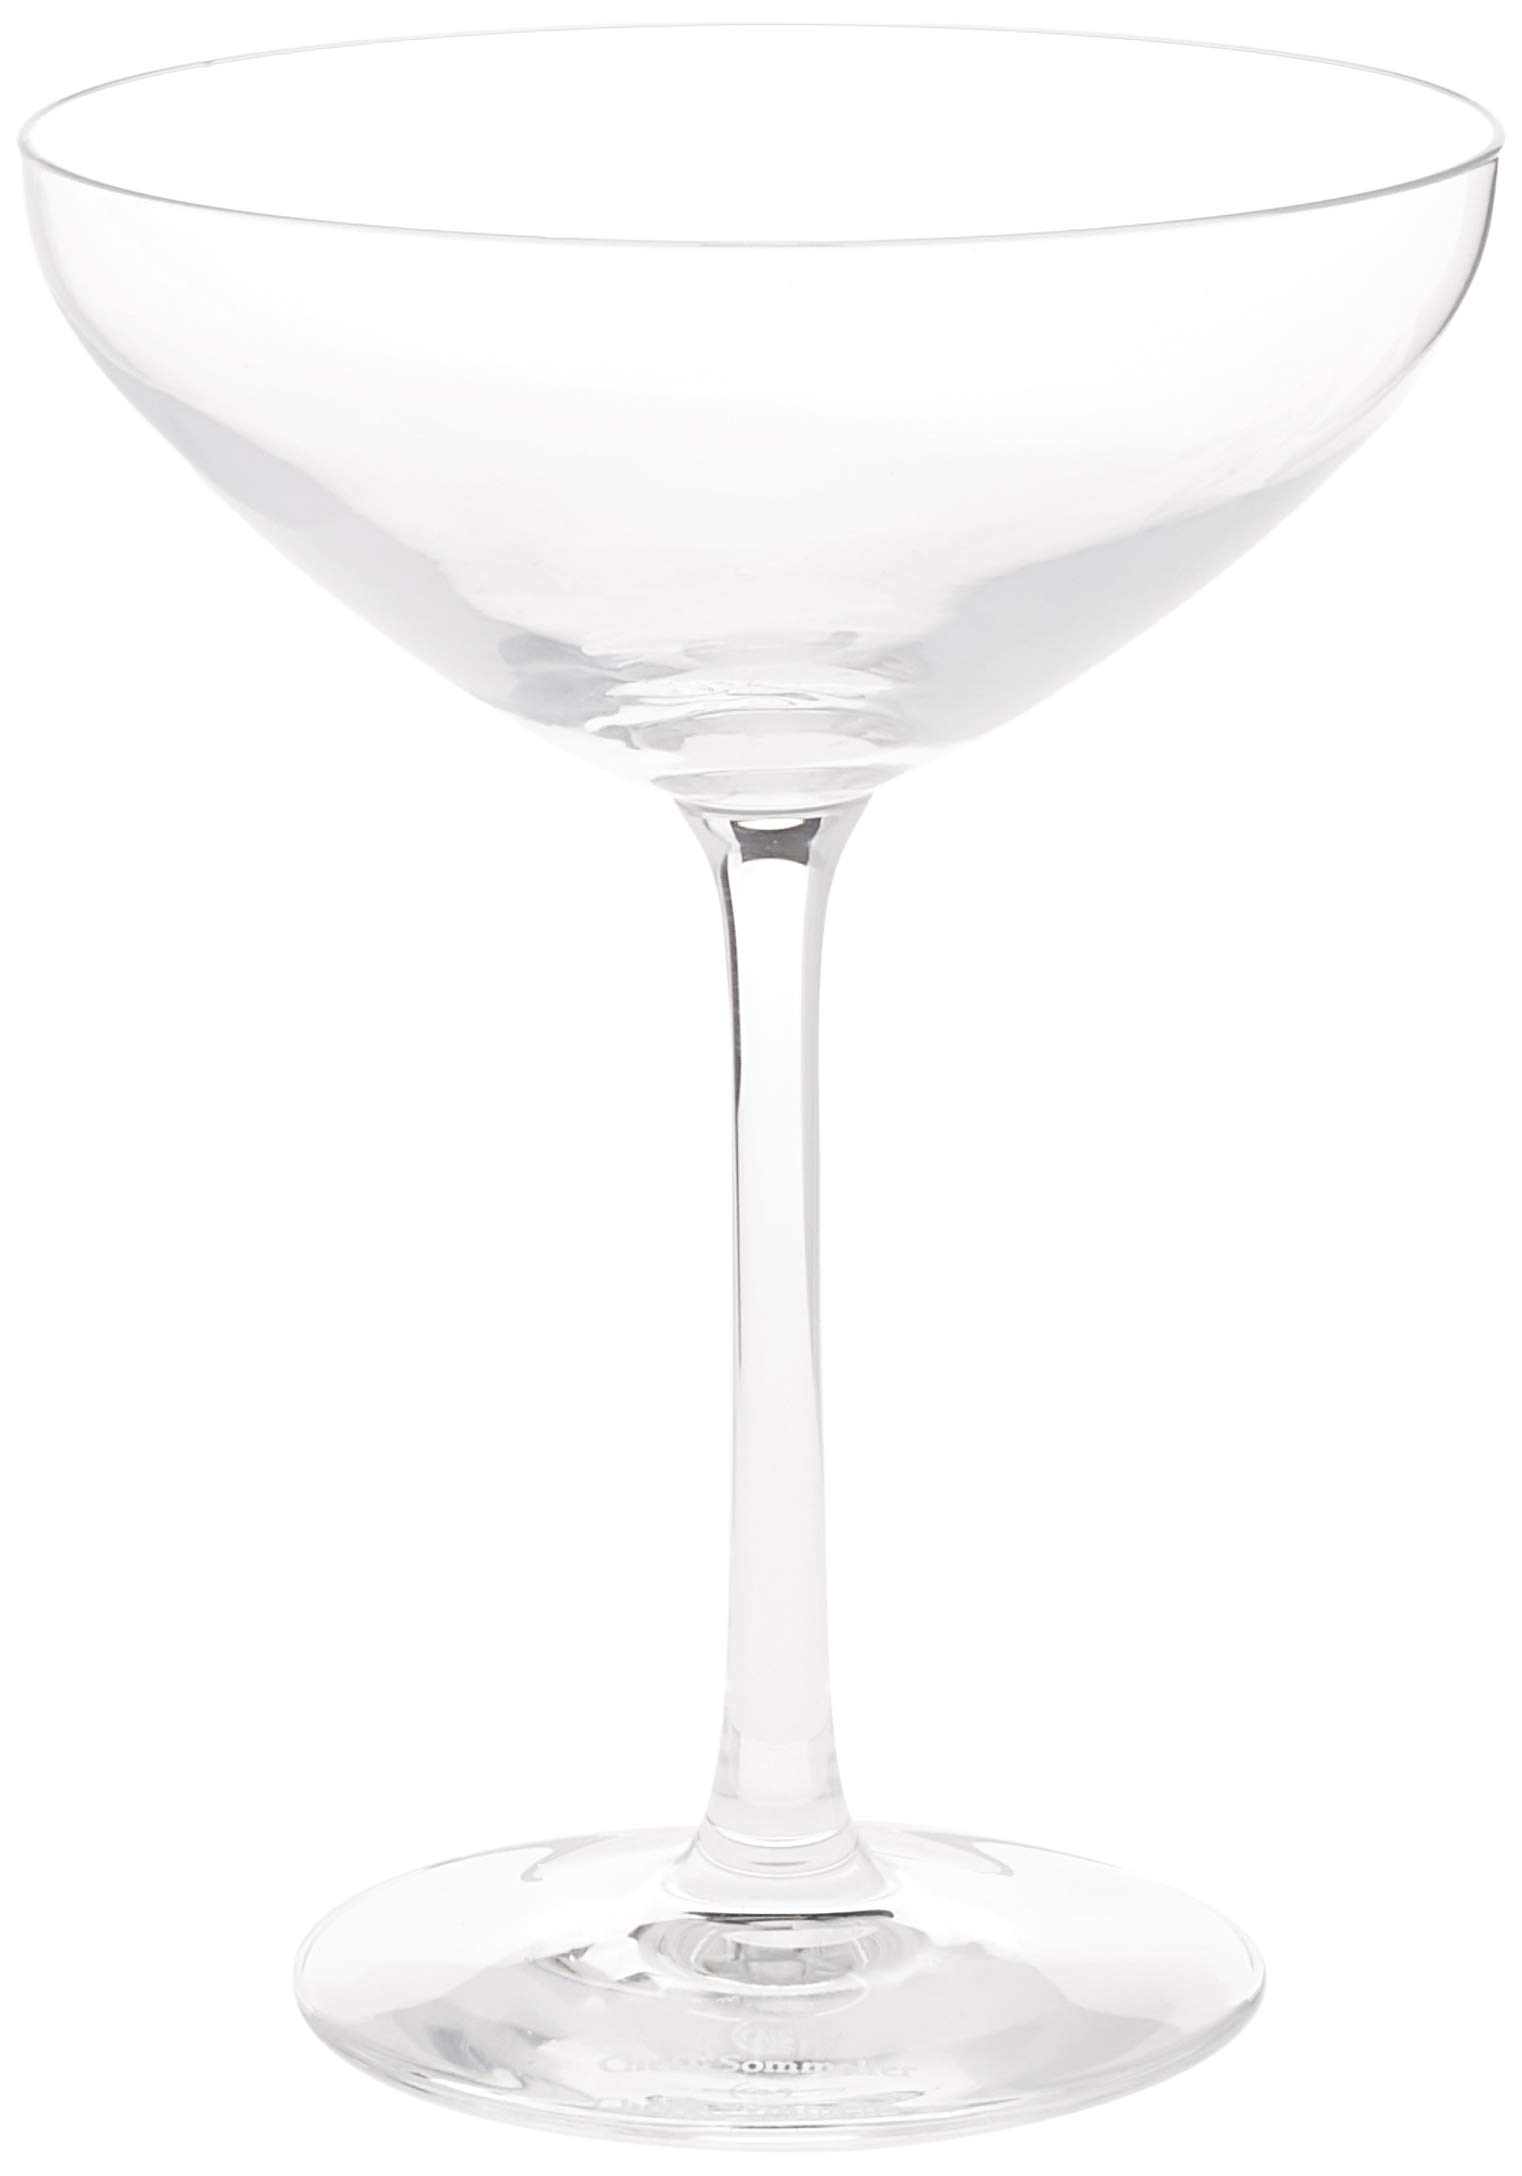 Chef & Sommelier L9236 Domaine 8.25 Ounce Coupe Martini Glass, Set of 6, 8.25 oz, Clear